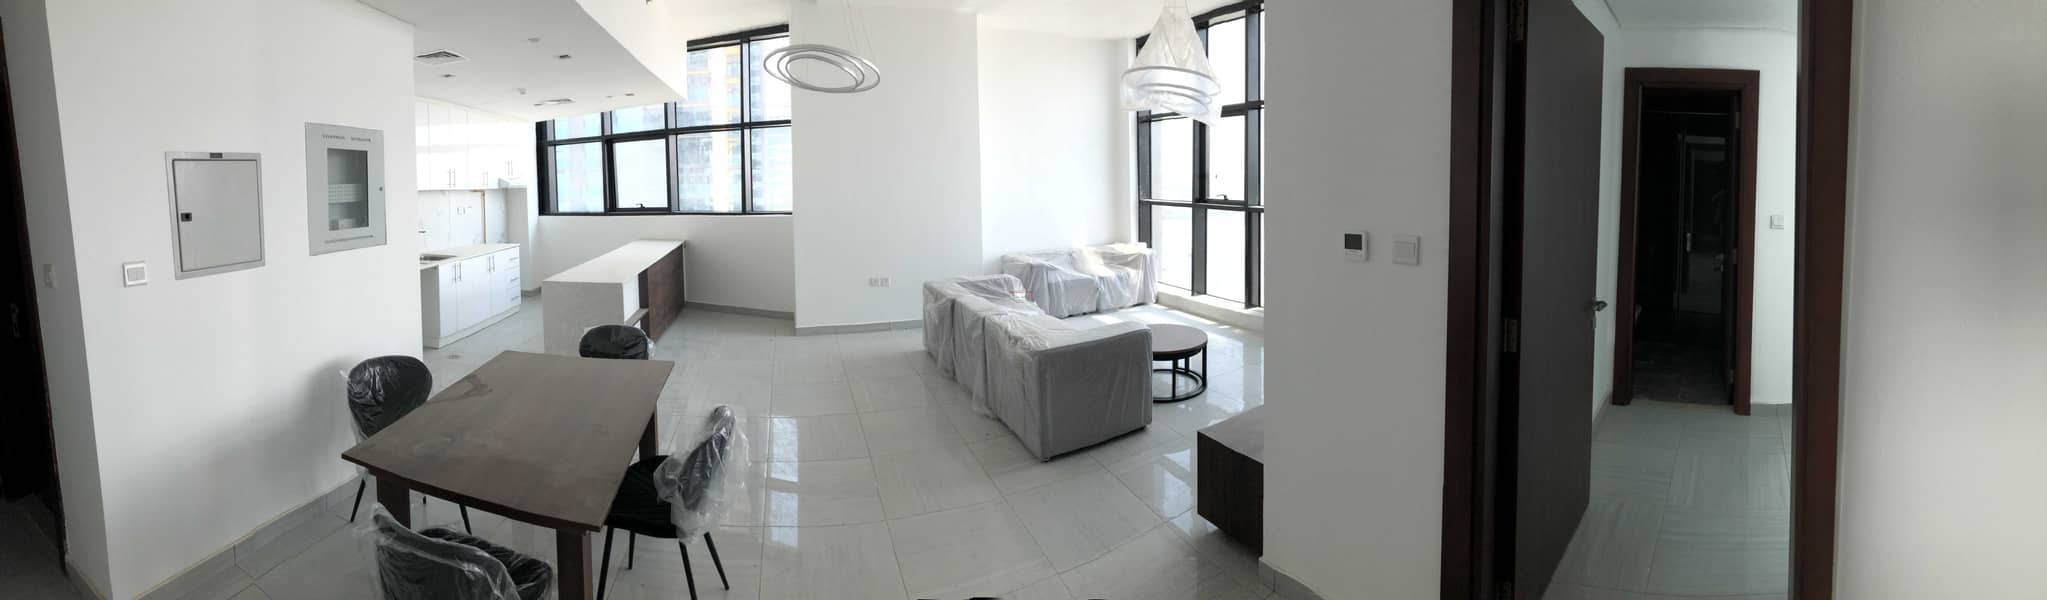 2 No Commission - Stunning Furnished 1 BR  for Rent in O2 Tower - JVC